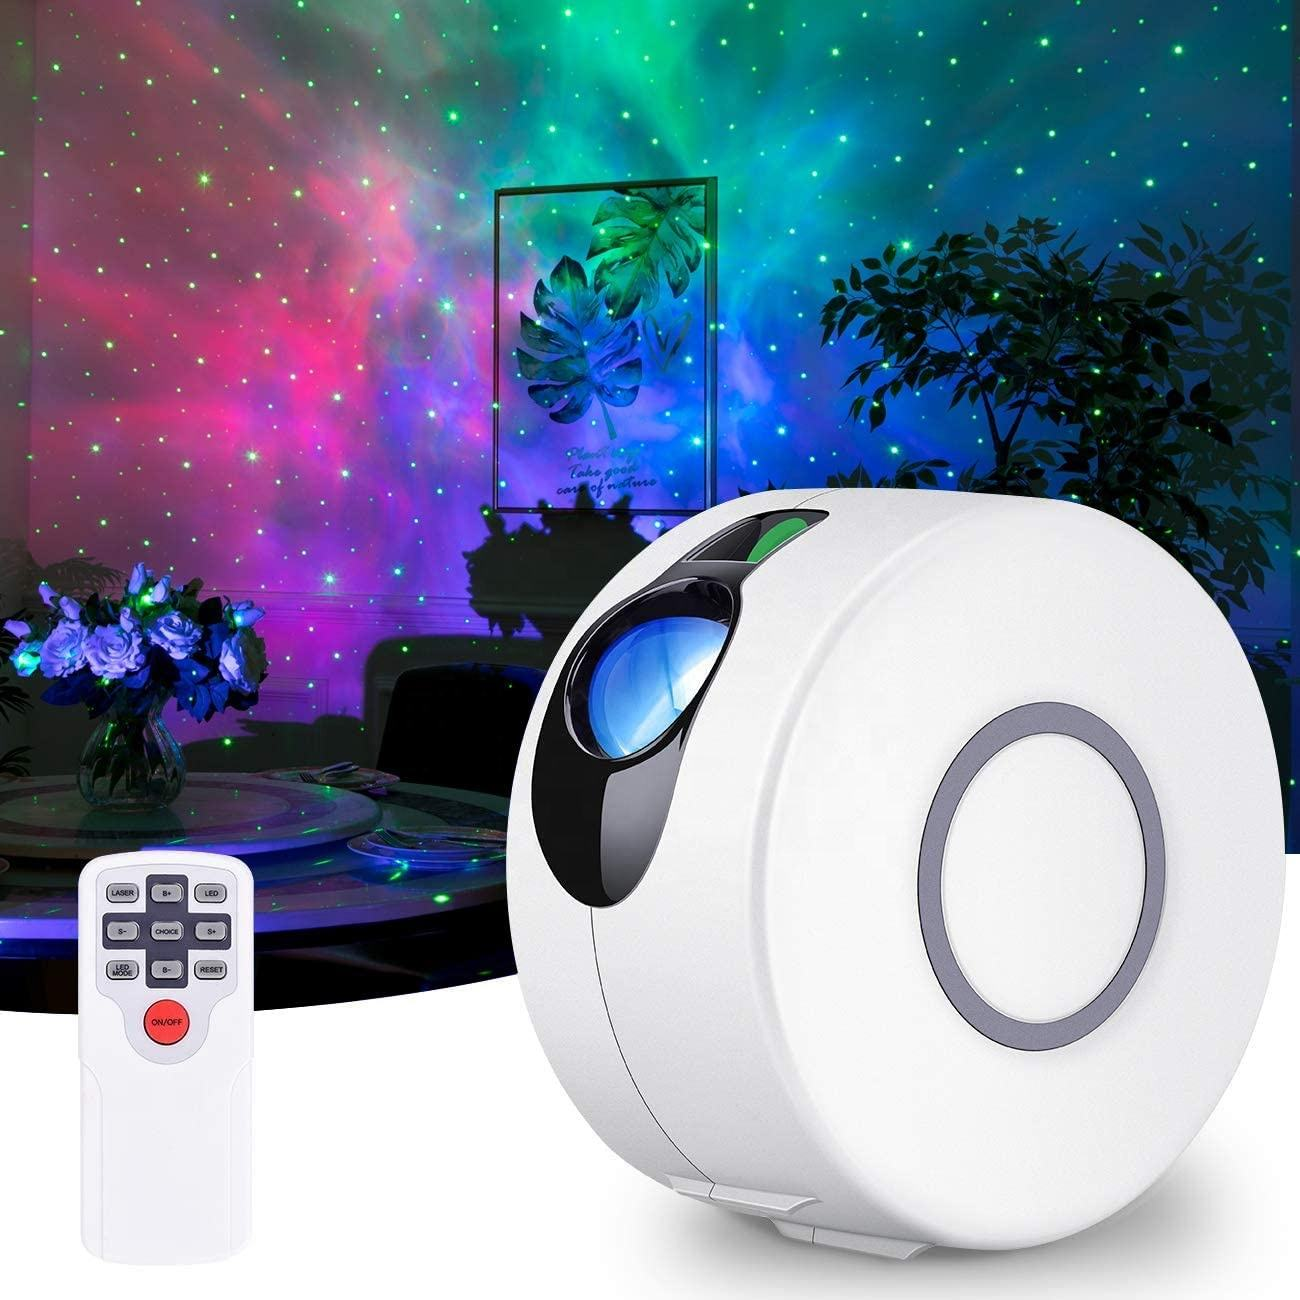 Biumart New Laser Galaxy Lamp Projector Nebula Cloud Room Projector Light for Game Rooms Home Theatre and Night Light Ambiance